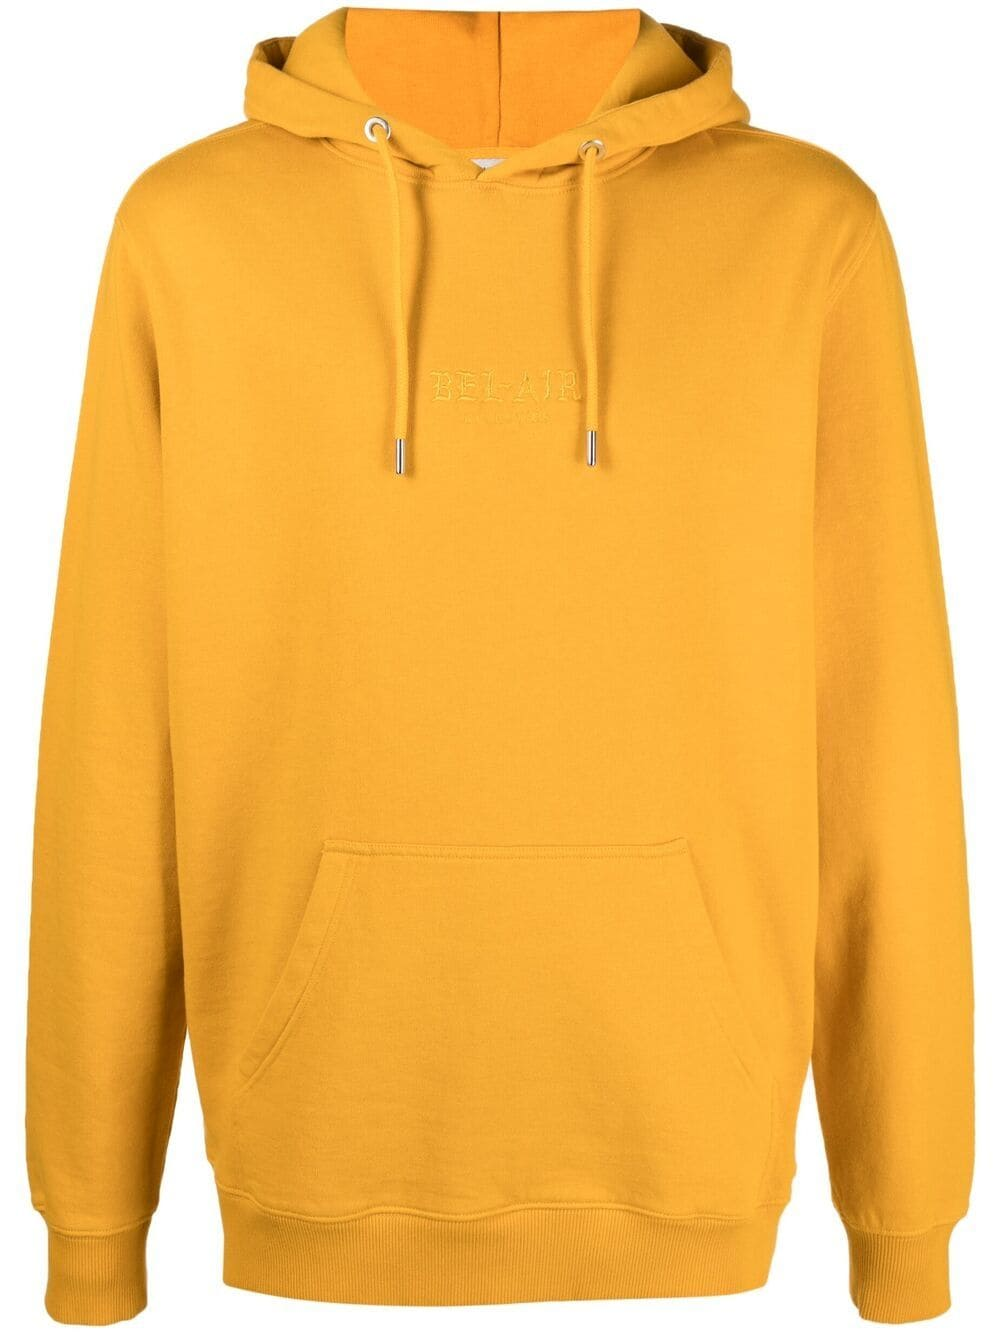 BEL-AIR ATHLETICS Gothic Font Hoodie Yellow